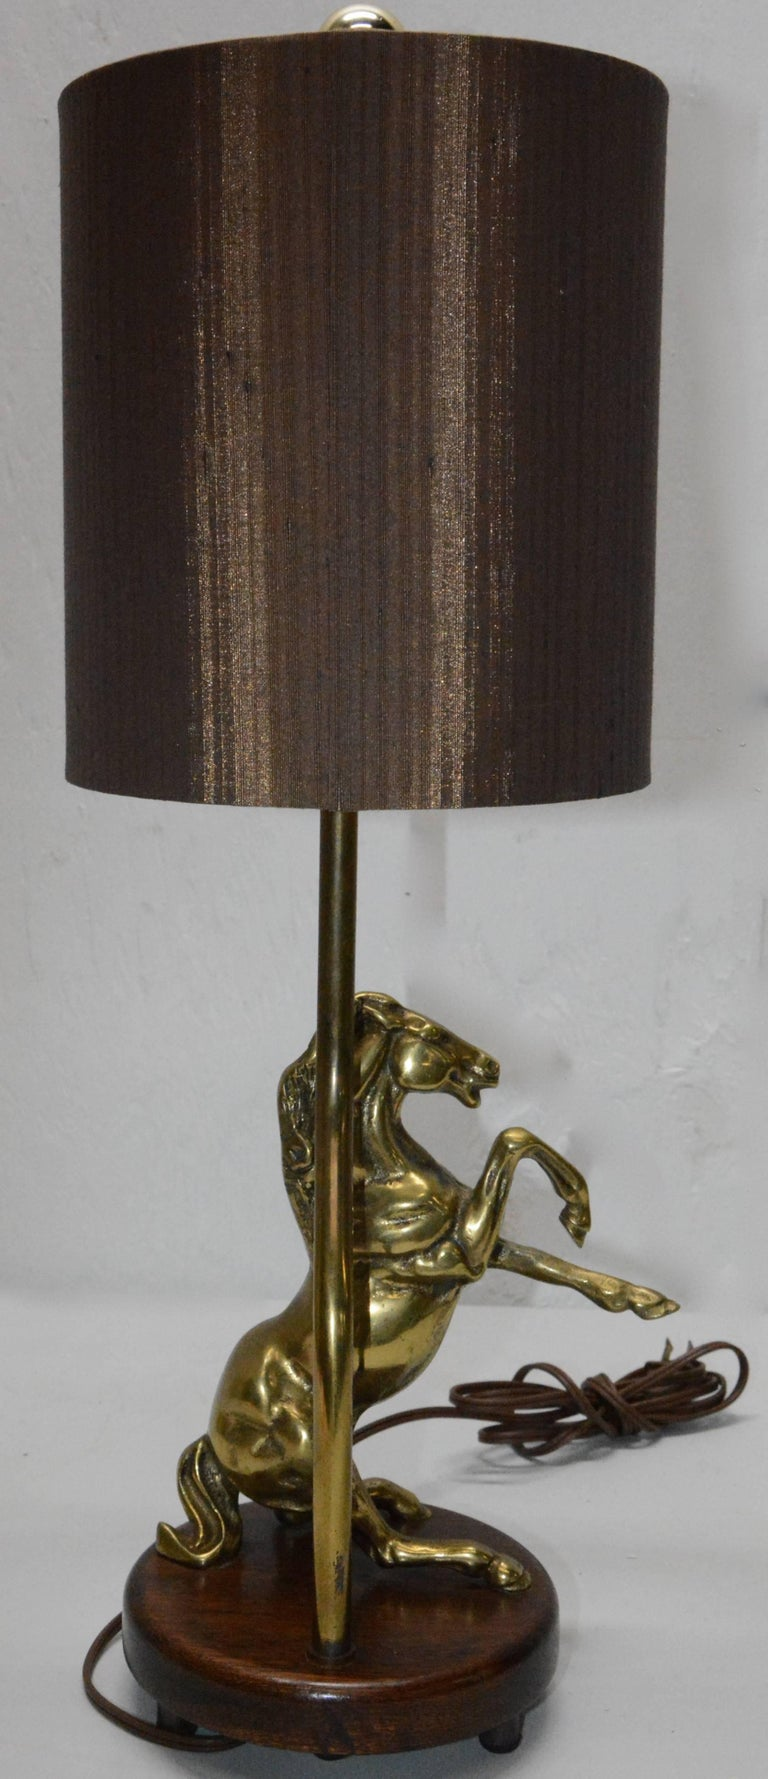 Vintage Solid Brass Horse Lamp With Shade For Sale At 1stdibs